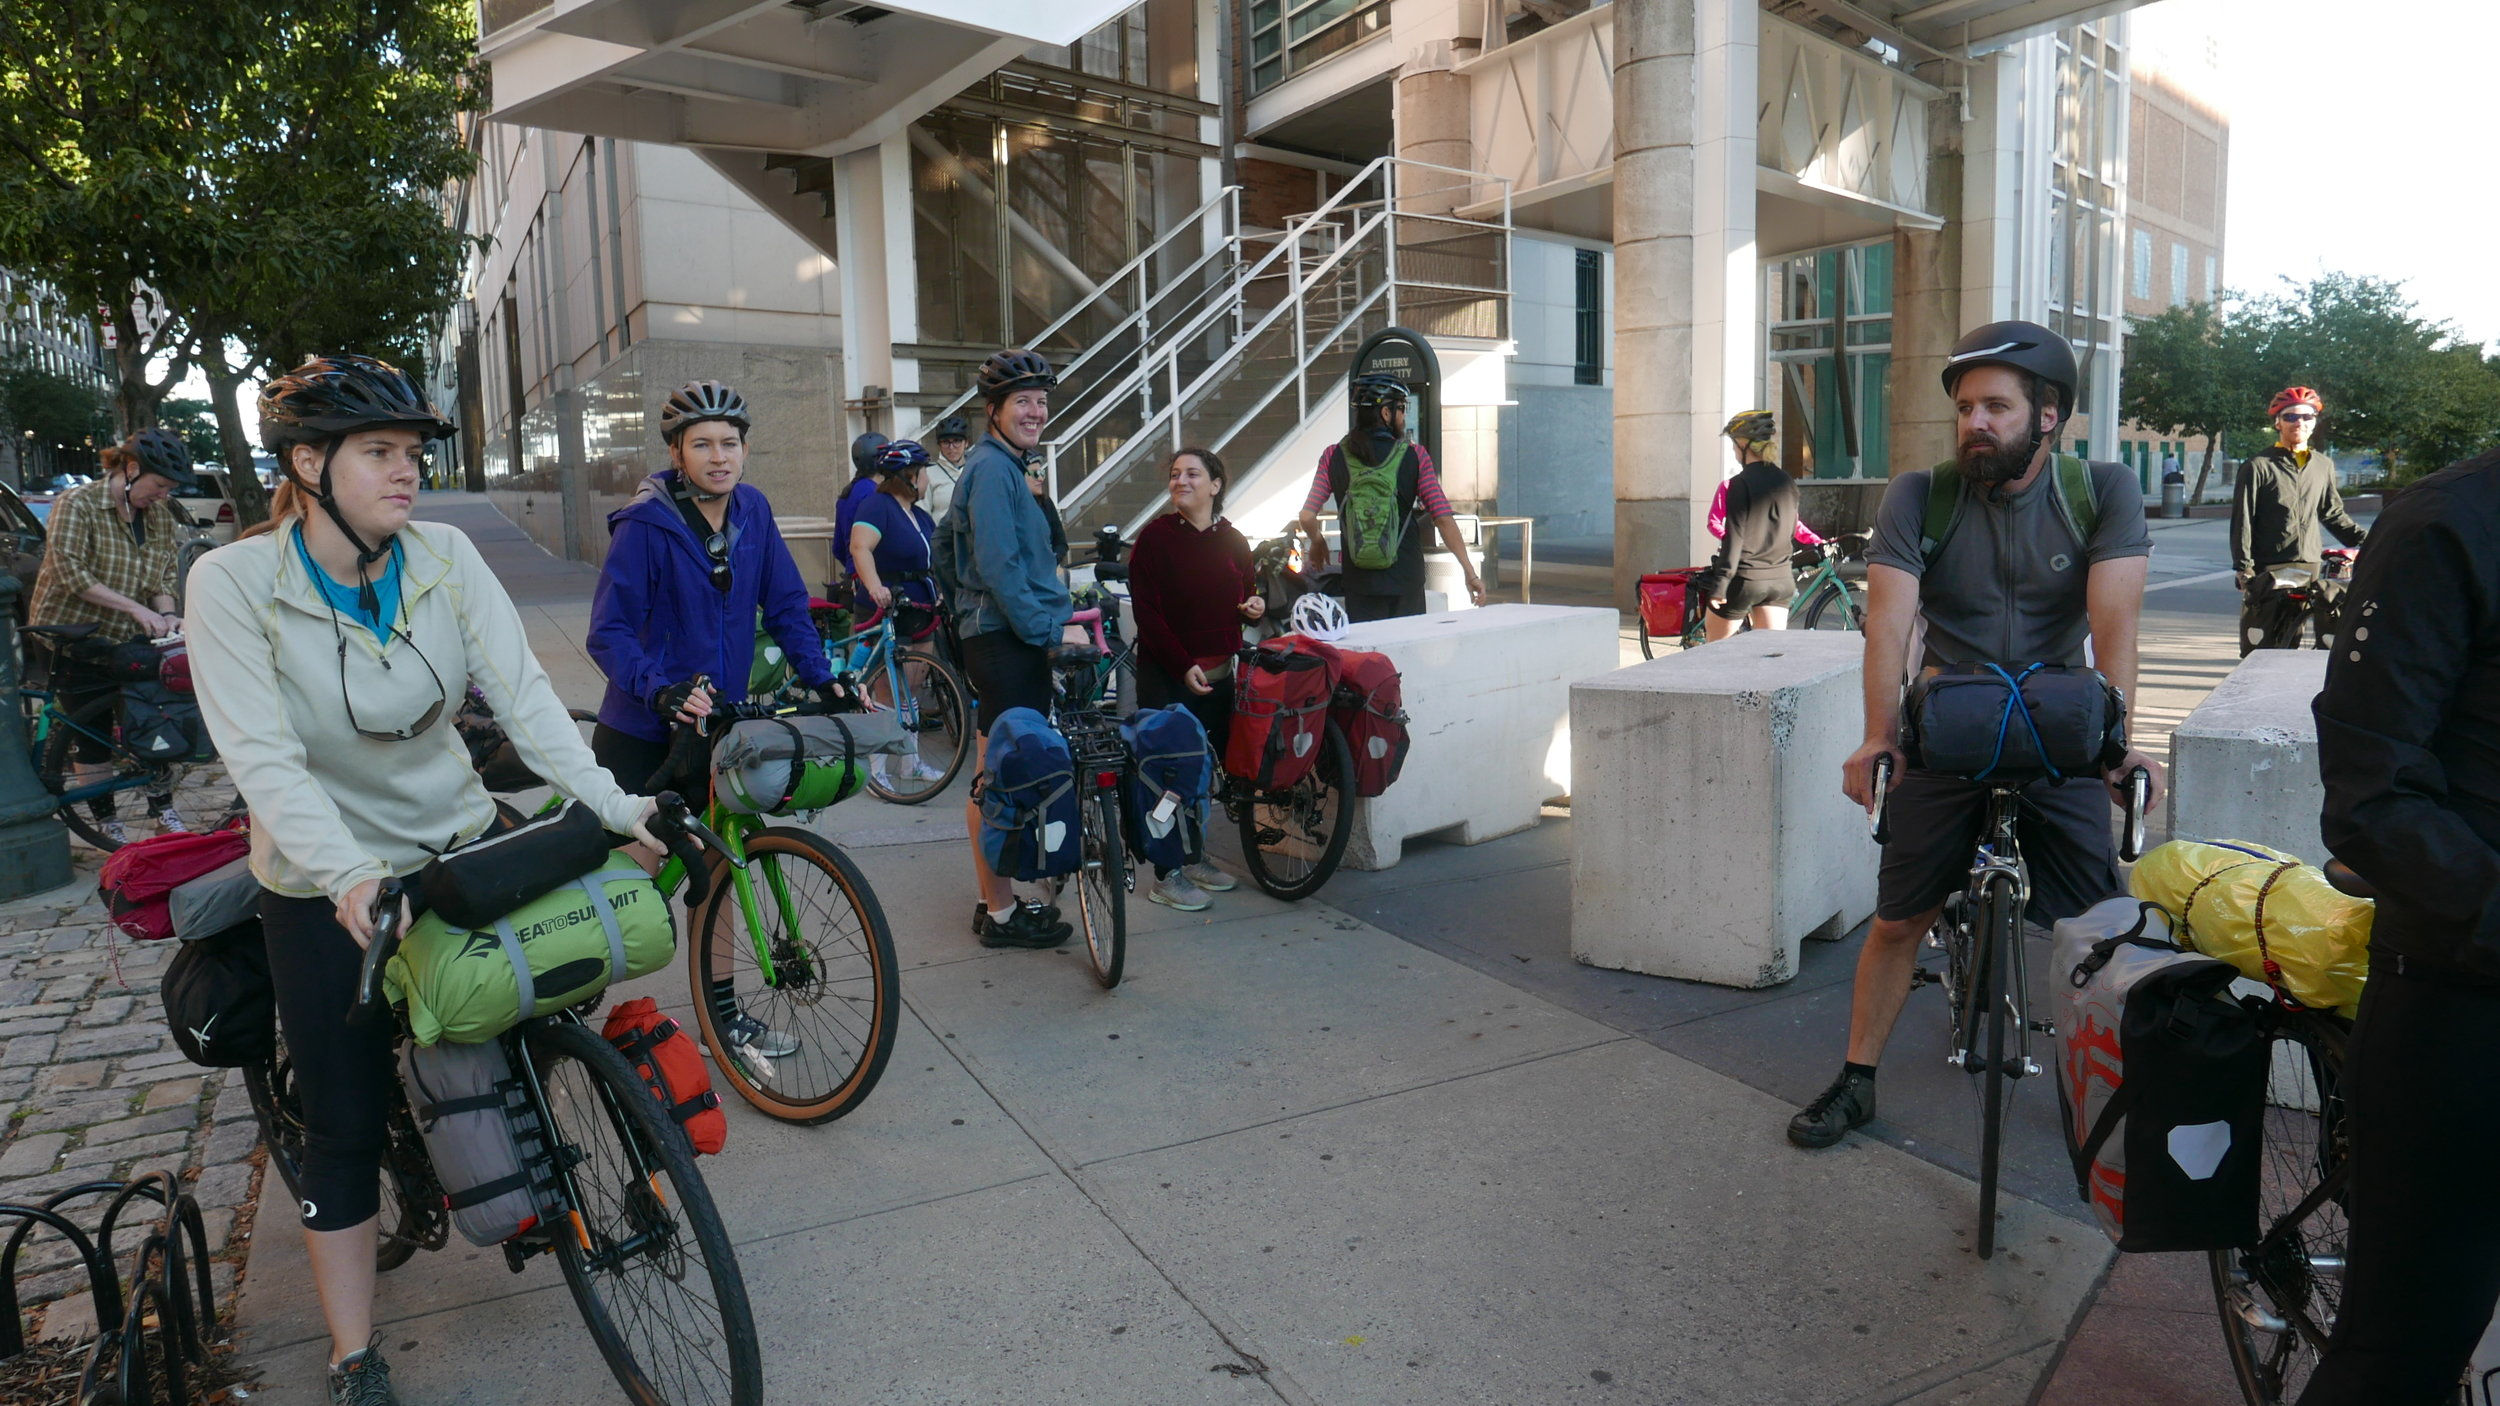 Launch of ride, at Chambers Street and the Hudson River Greenway